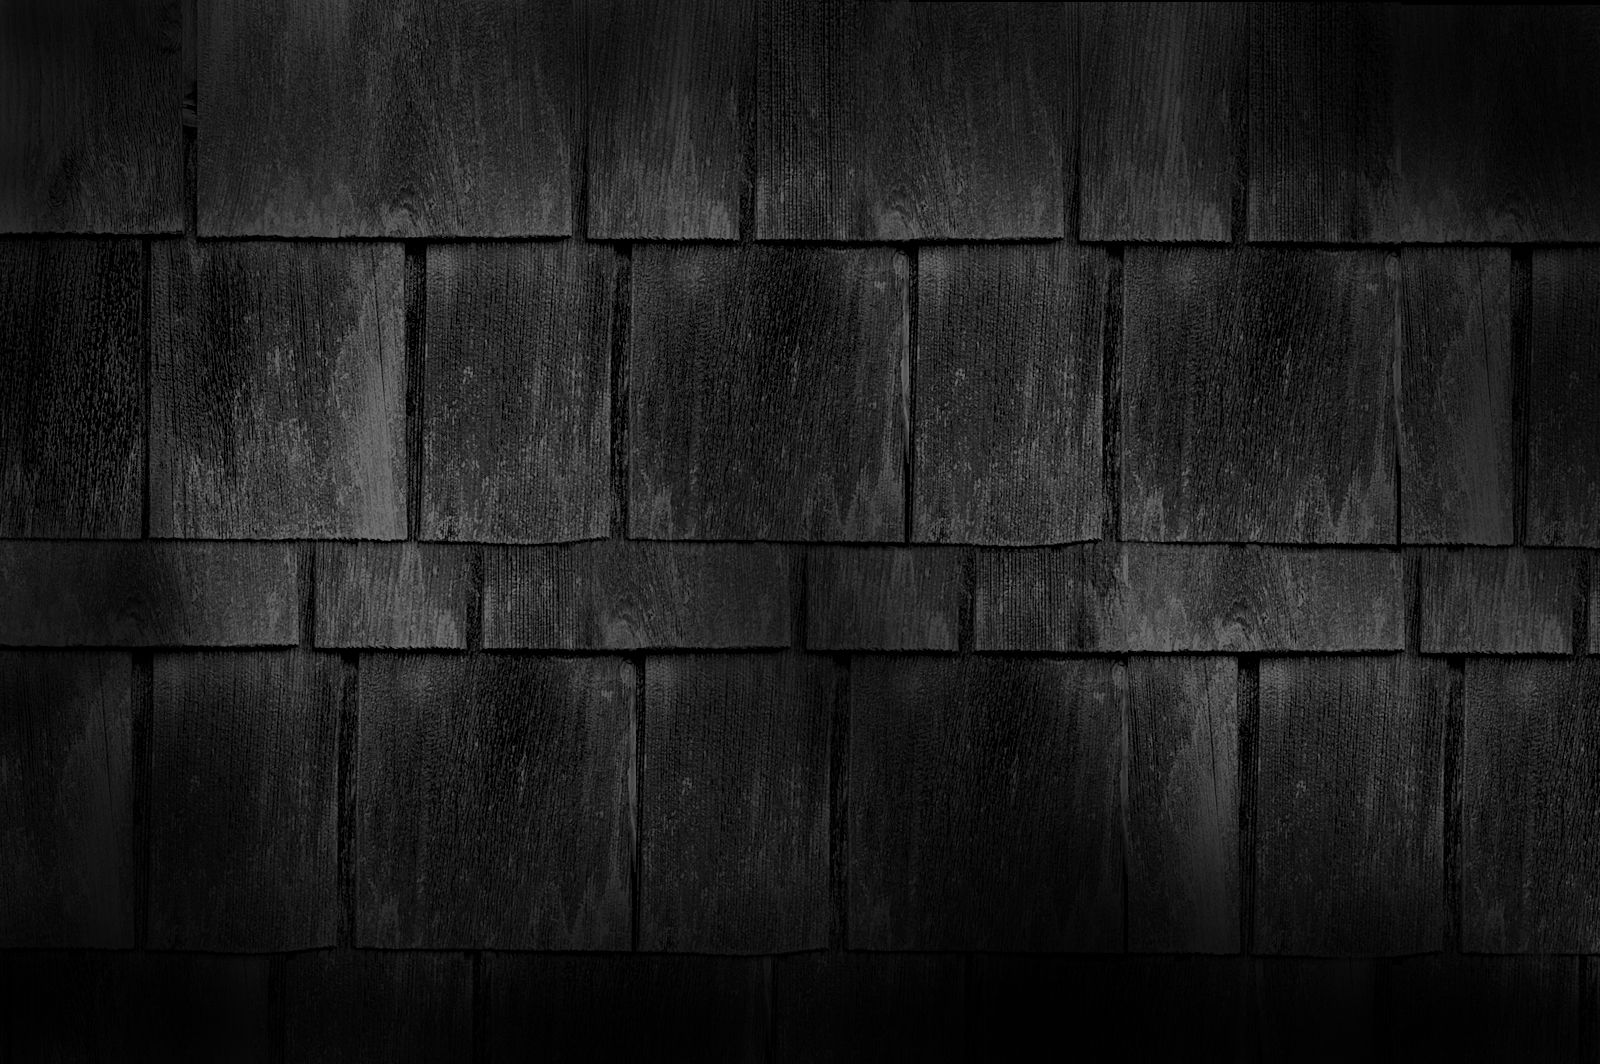 Wood dark background texture wallpaper background iphone 6 - Dark Hd Wallpapers For Desktop V Dark Hd Collection Dark Woods Wallpapers Wallpapers